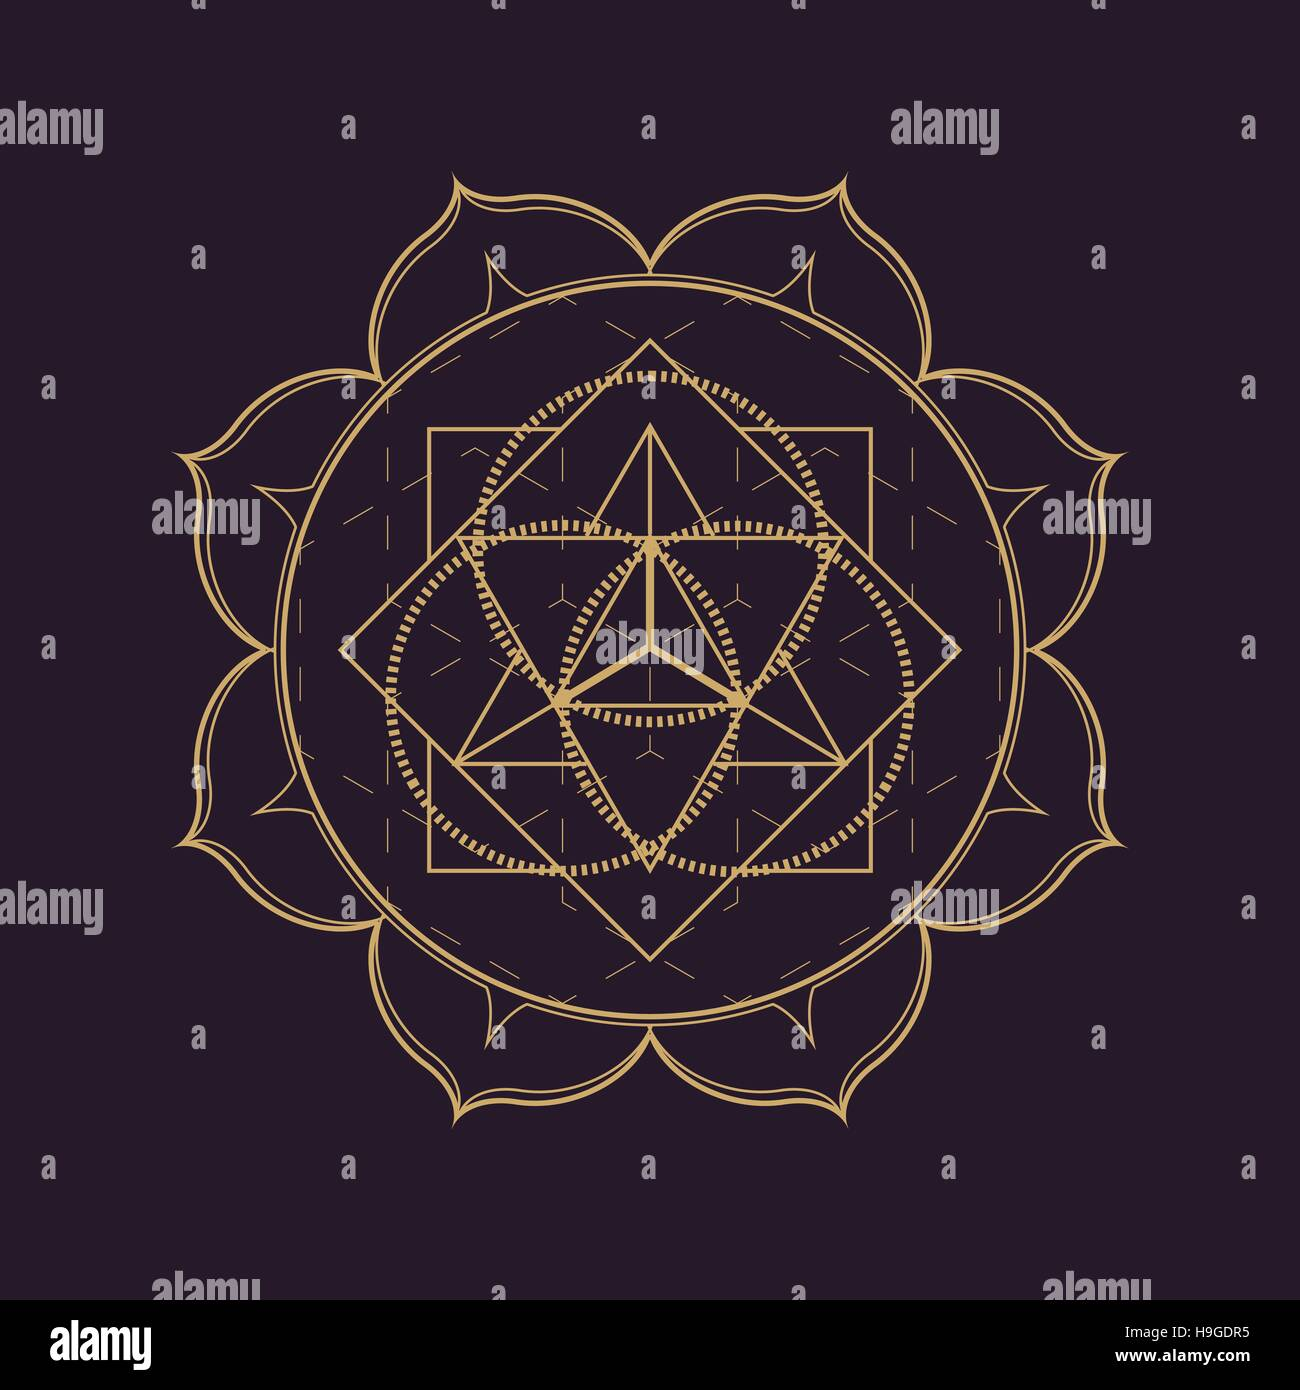 vector gold monochrome design abstract mandala sacred geometry illustration triangle circles Merkaba lotus isolated - Stock Image